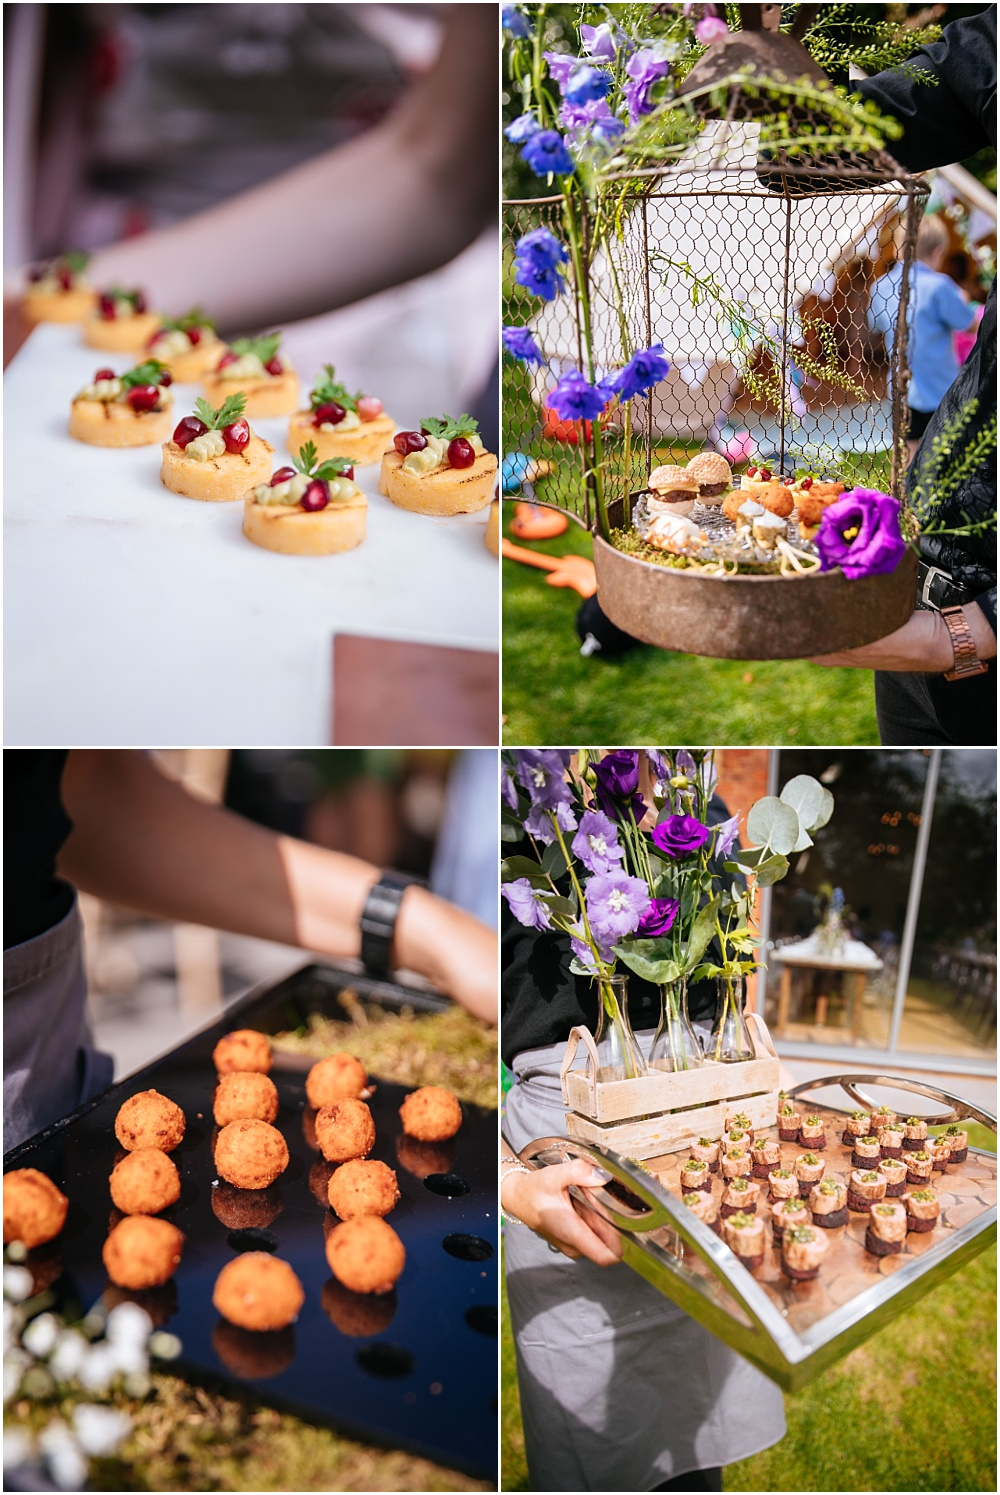 Kalm kitchen wedding catering